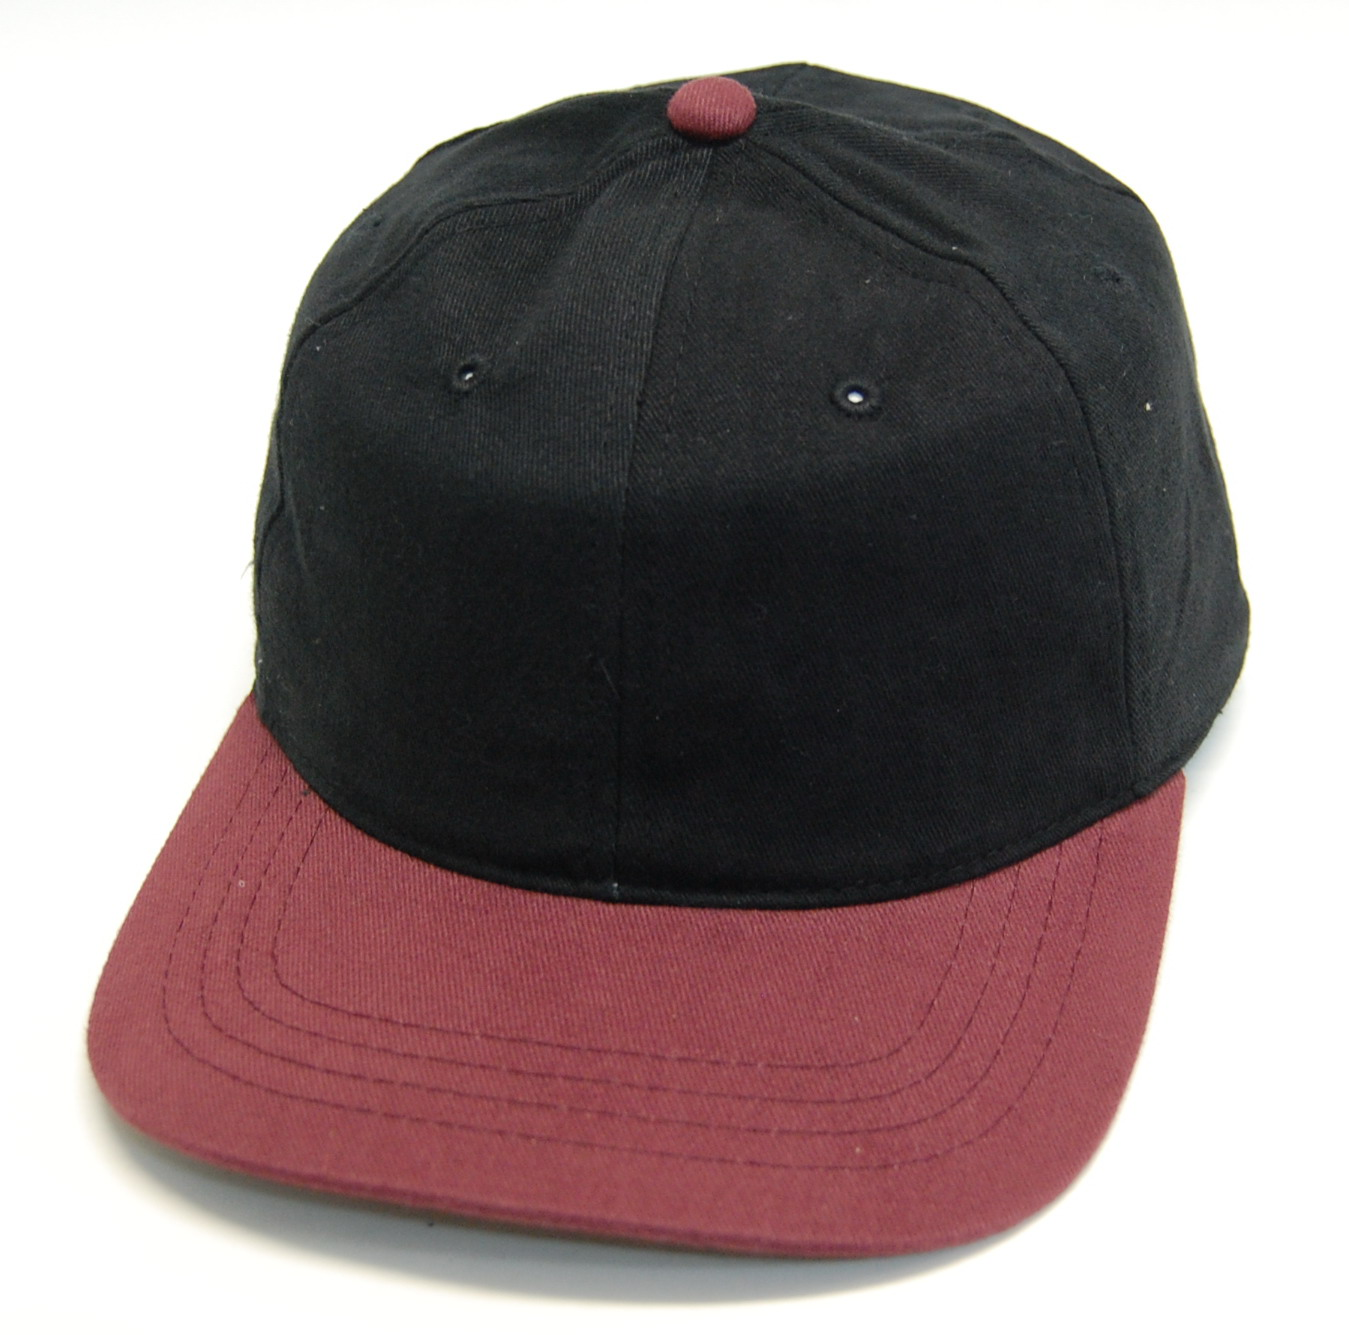 CO290 Black Burgundy